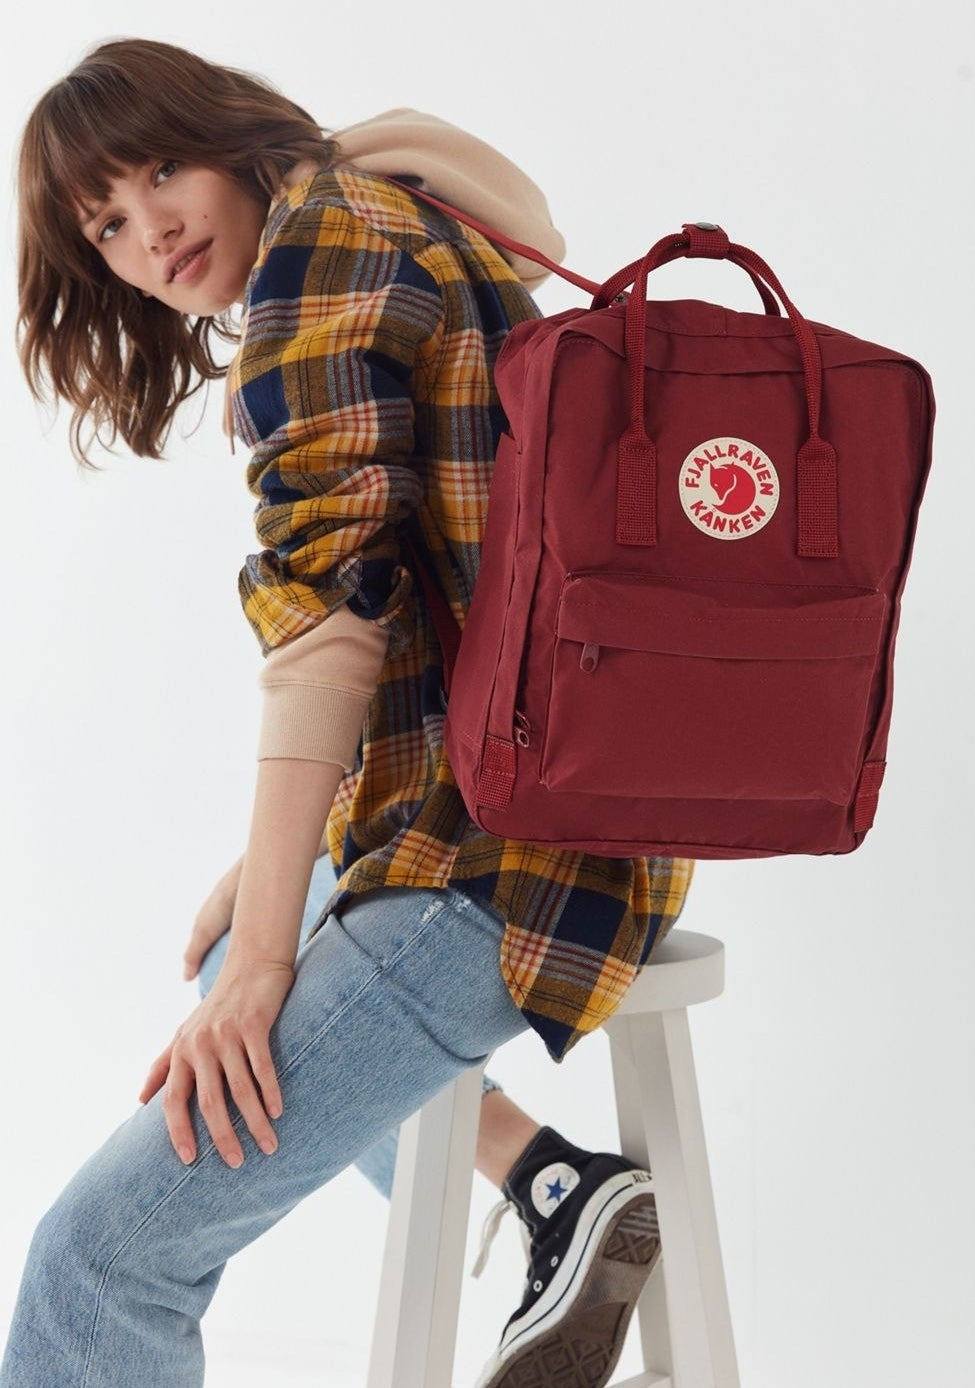 Model with the rectangle-shaped backpack with top handles, and a big front zippered pocket in red